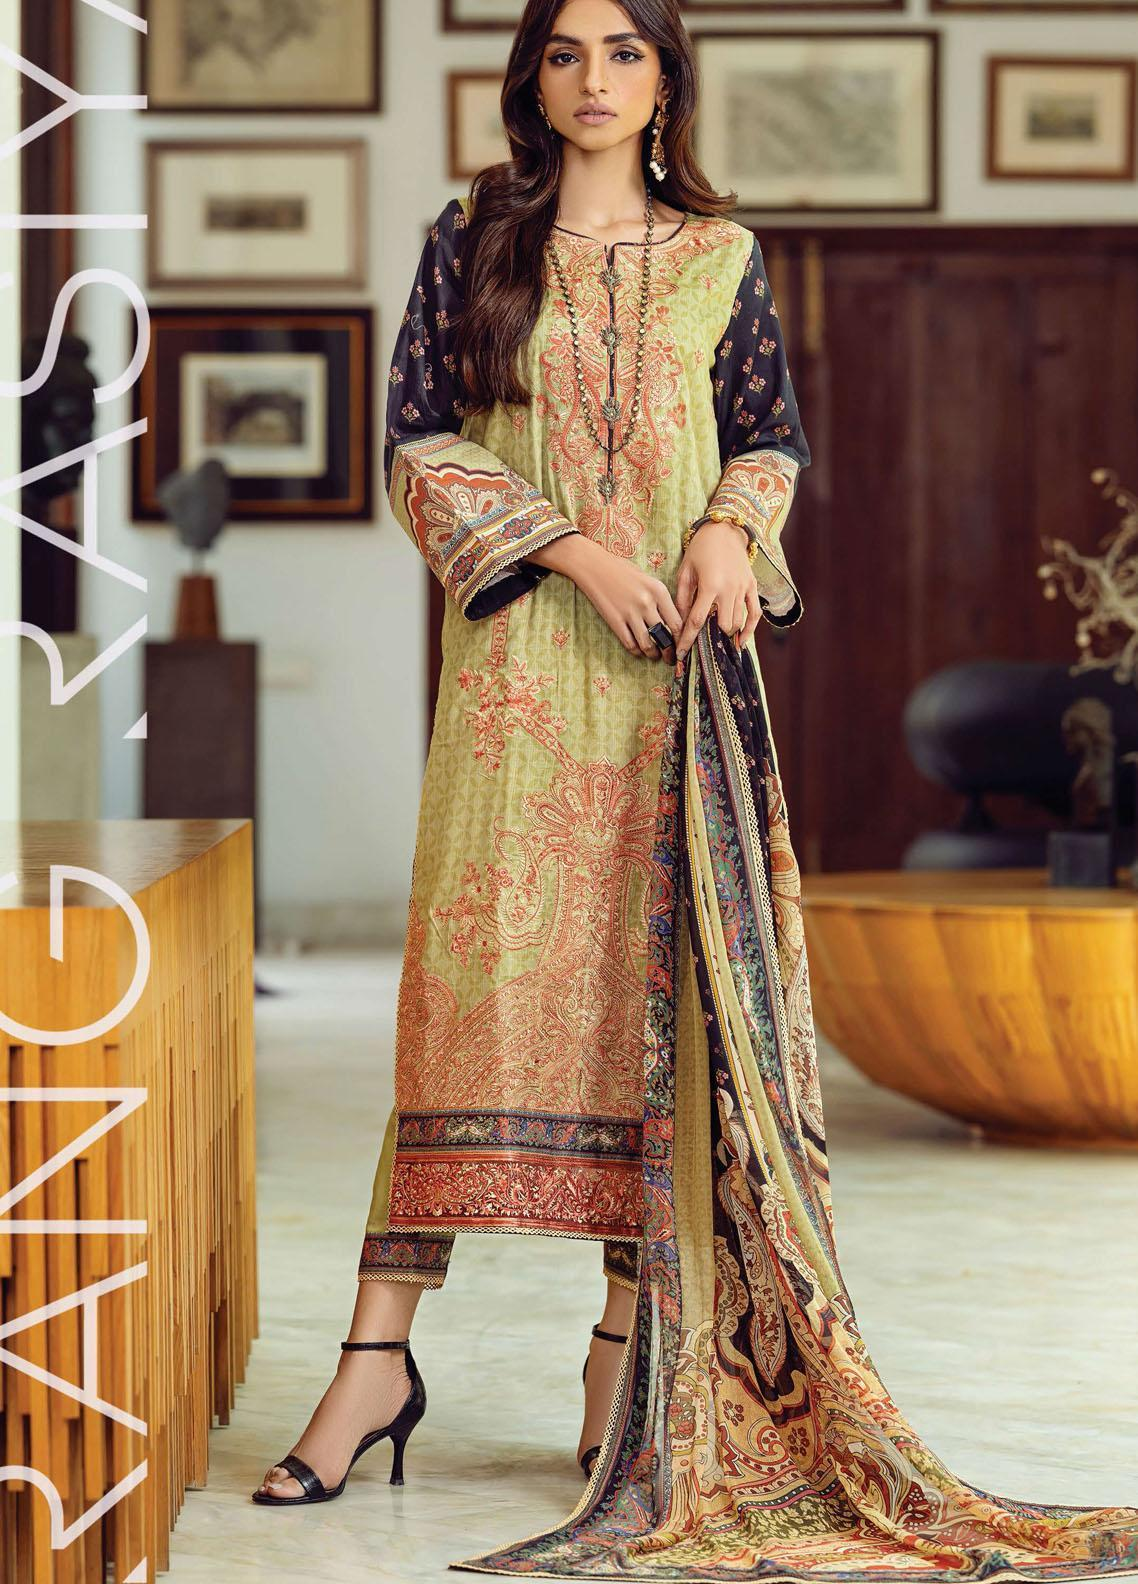 Florence By Rang Rasiya Embroidered Lawn Suits Unstitched 3 Piece RR21FF 08 Gotth - Festive Collection